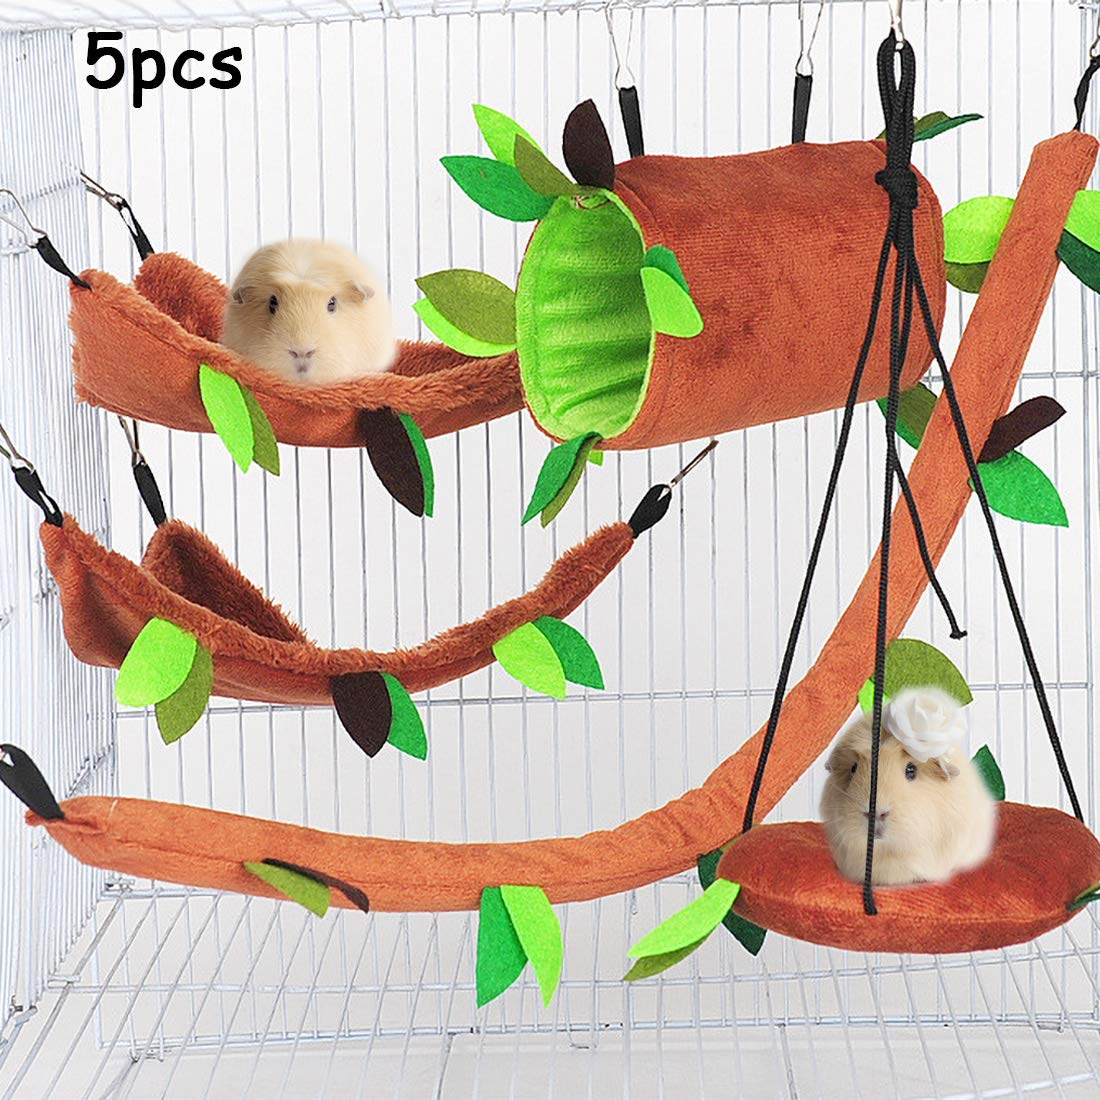 Hamiledyi Hamster Hammock,Hamster Hanging Swing Tunnel Cage Accessories Toys for Small Animal Sugar Glider Chinchilla Squirrel Hamster Rat Playing (5 Pcs)